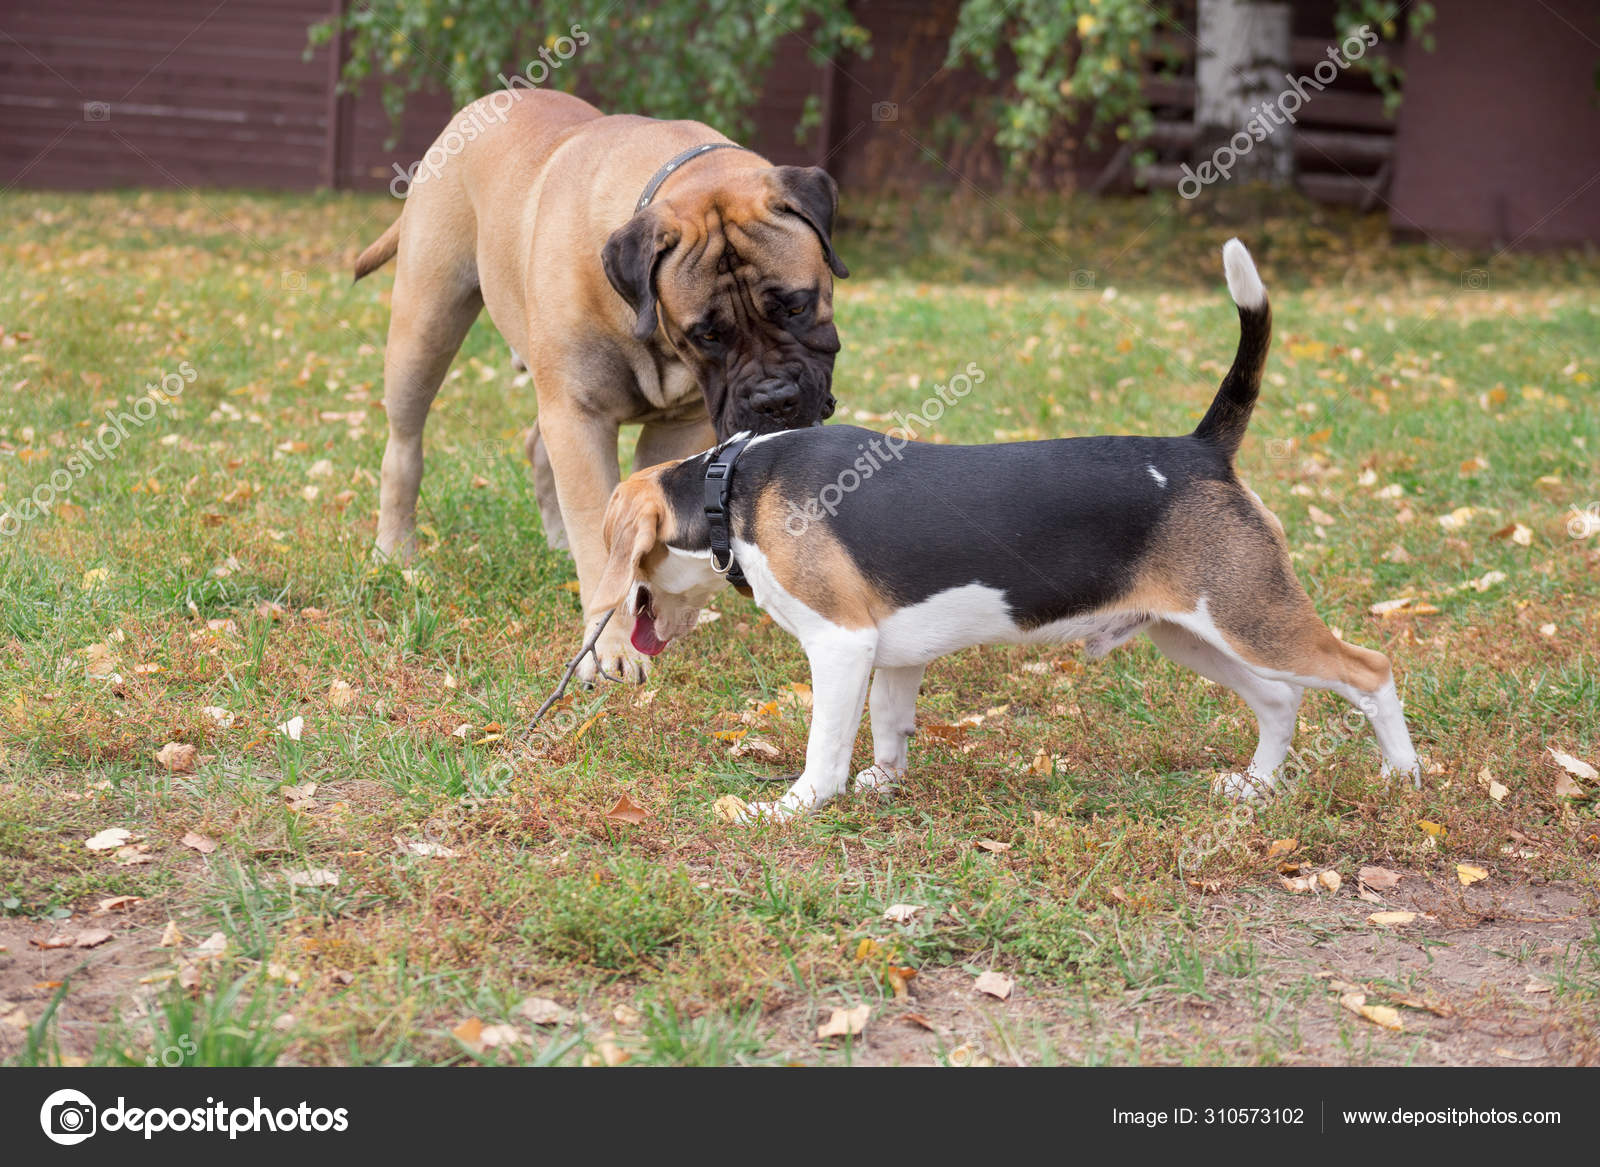 Cute Beagle Puppy And Bullmastiff Puppy Are Playing In The Autumn Park Pet Animals Stock Photo C Sergeytikhomirov 310573102